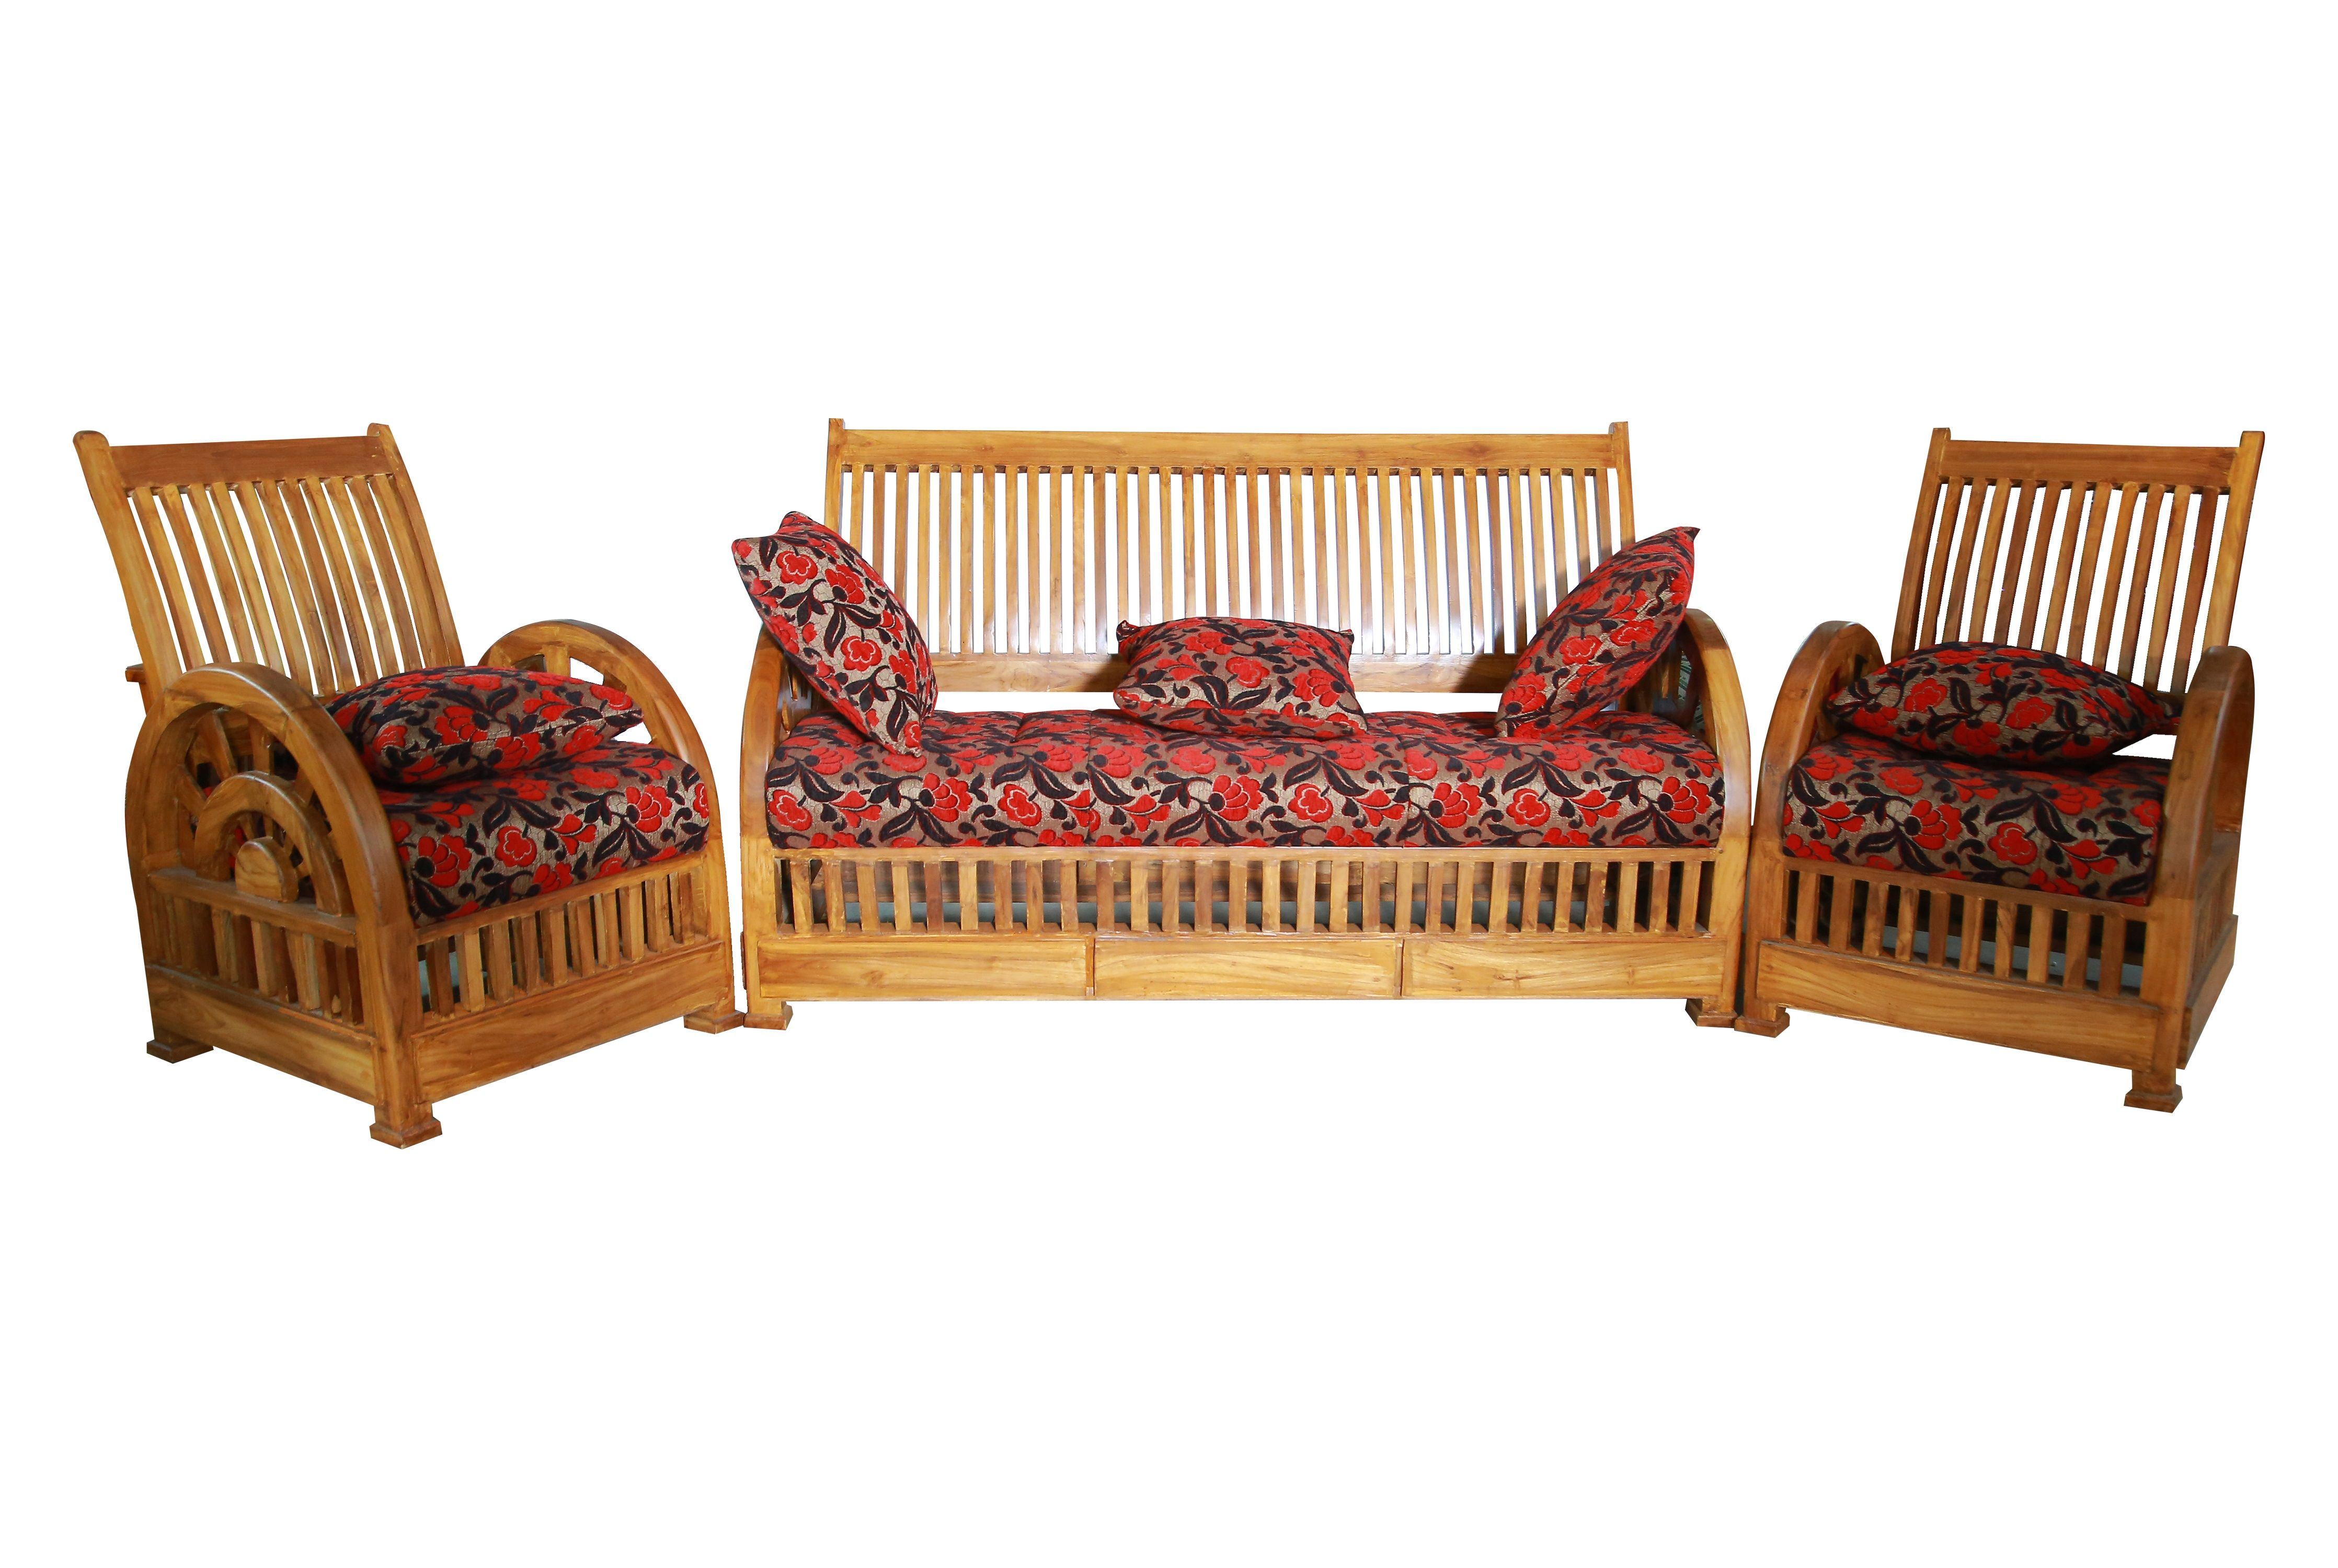 Verona Teak Wood Sofa Set 3 1 1 Seater Teak Wood Furniture Rosewood Furniture Wood Sofa